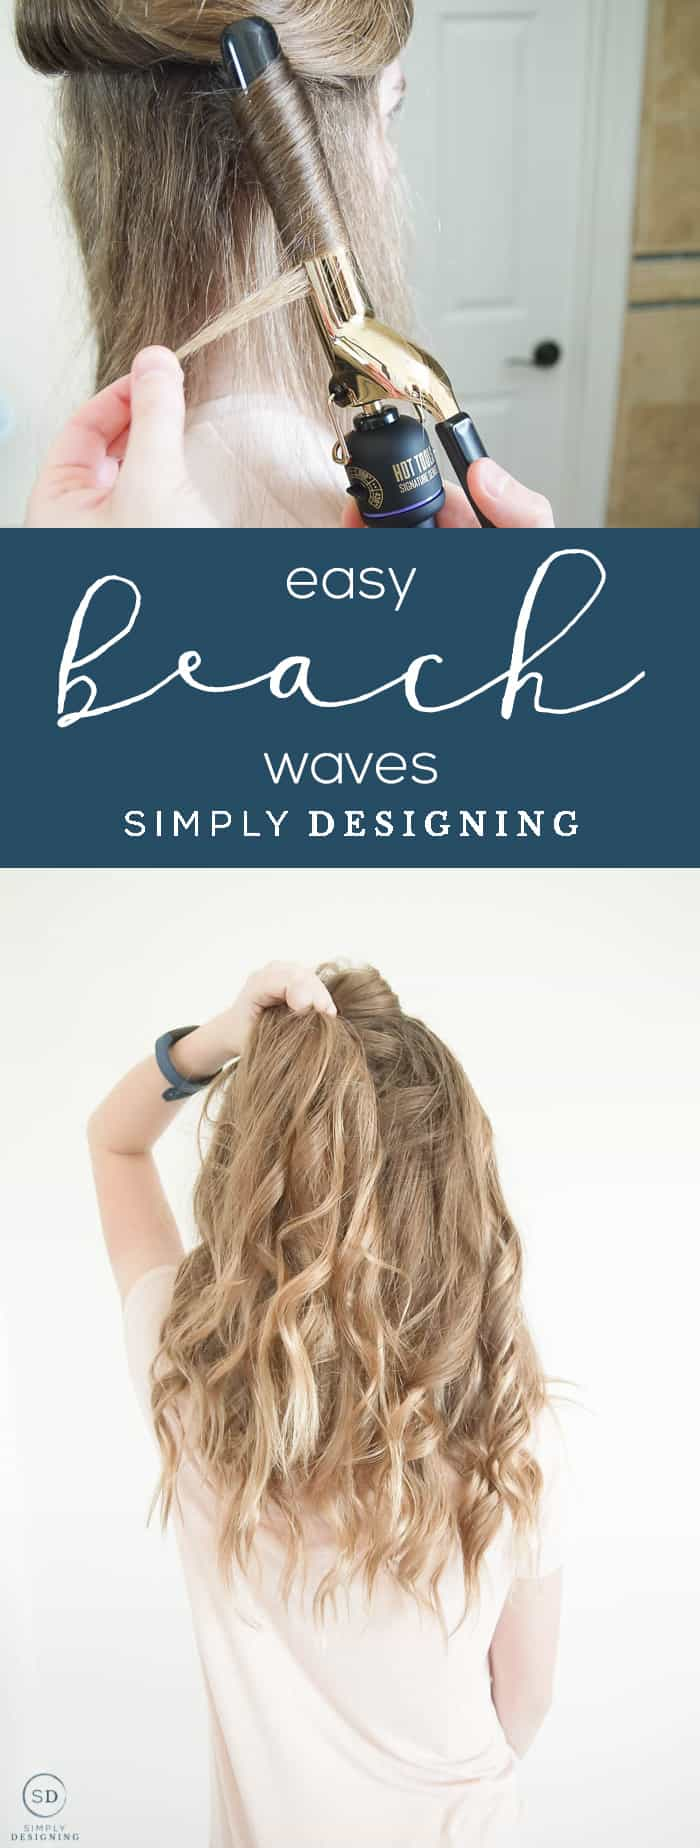 Easy Beach Waves for Long Hair - I am sharing how to create easy beach waves for long or short hair in only a few minutes